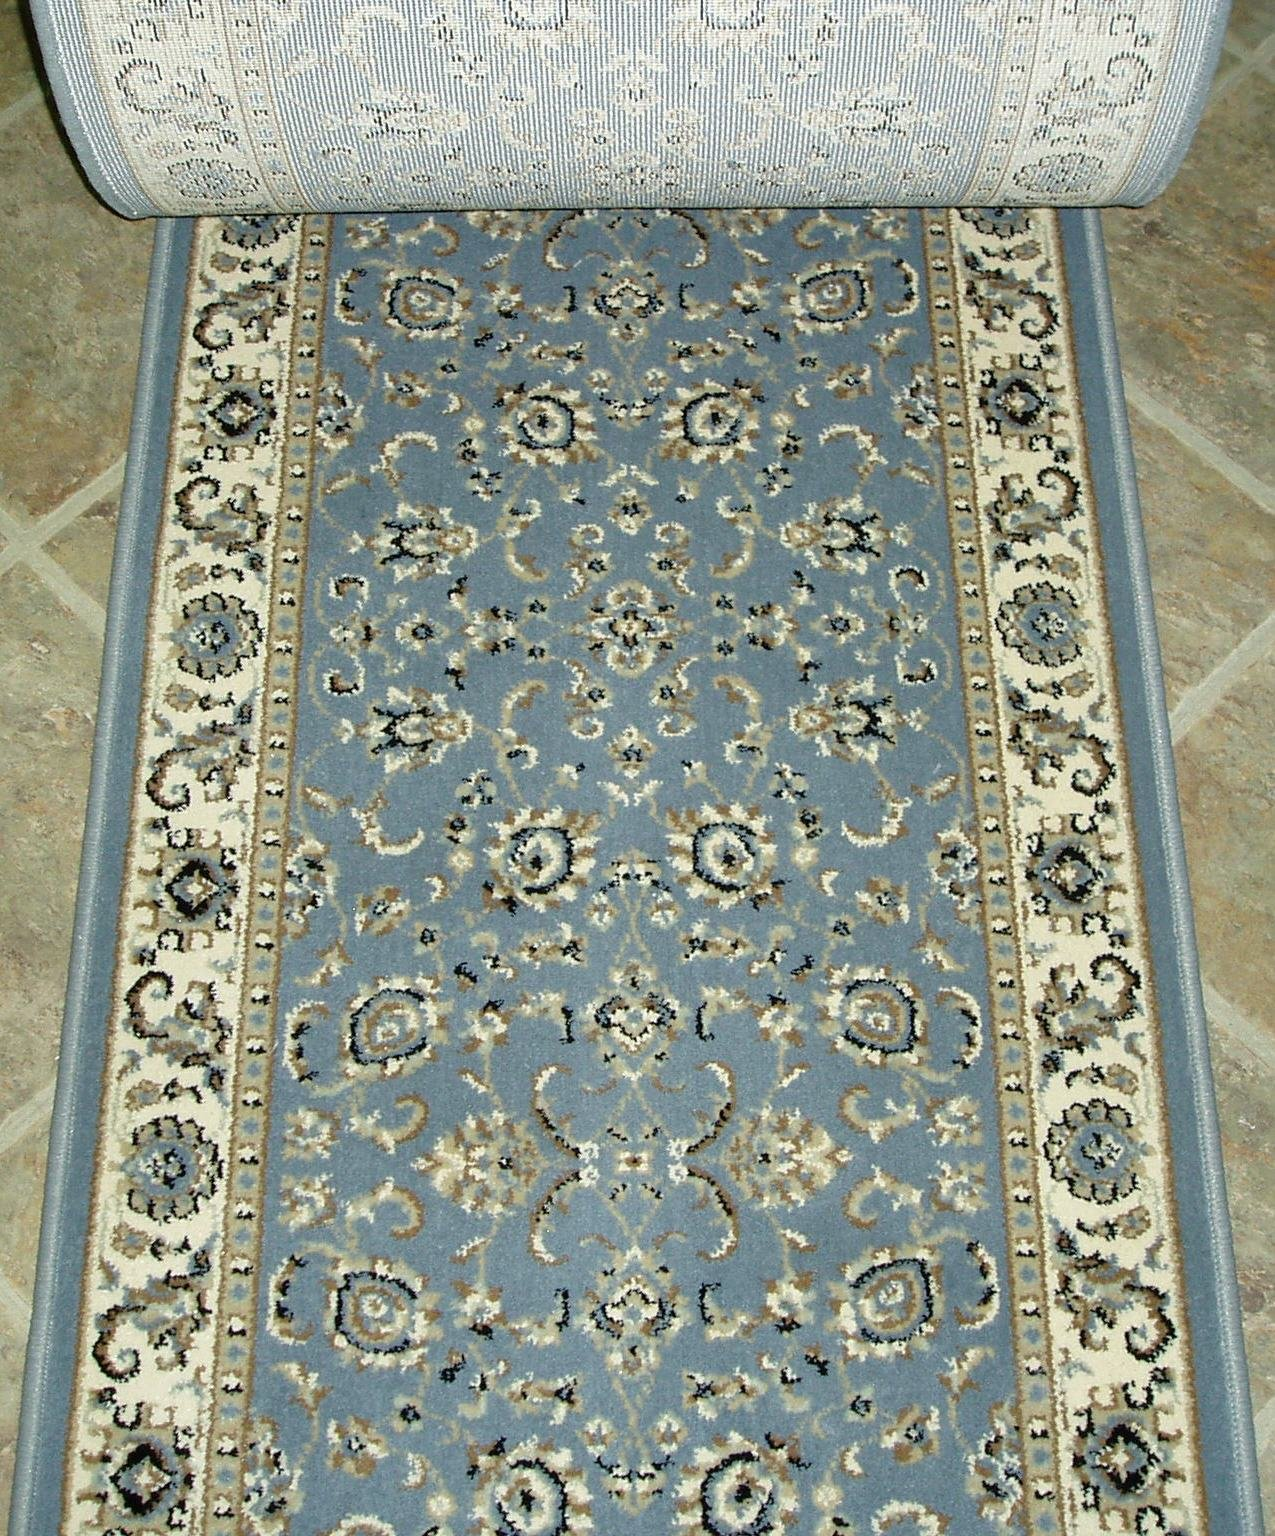 "153460 - Rug Depot Radici Alba 1426 Grey Traditional Hall and Stair Runner - 26"" Wide Hallway Rug Runner - Light Blue Background - Carpet Runner Sold By the Foot -  - runner-rugs, entryway-furniture-decor, entryway-laundry-room - 91KGvGjHcML -"